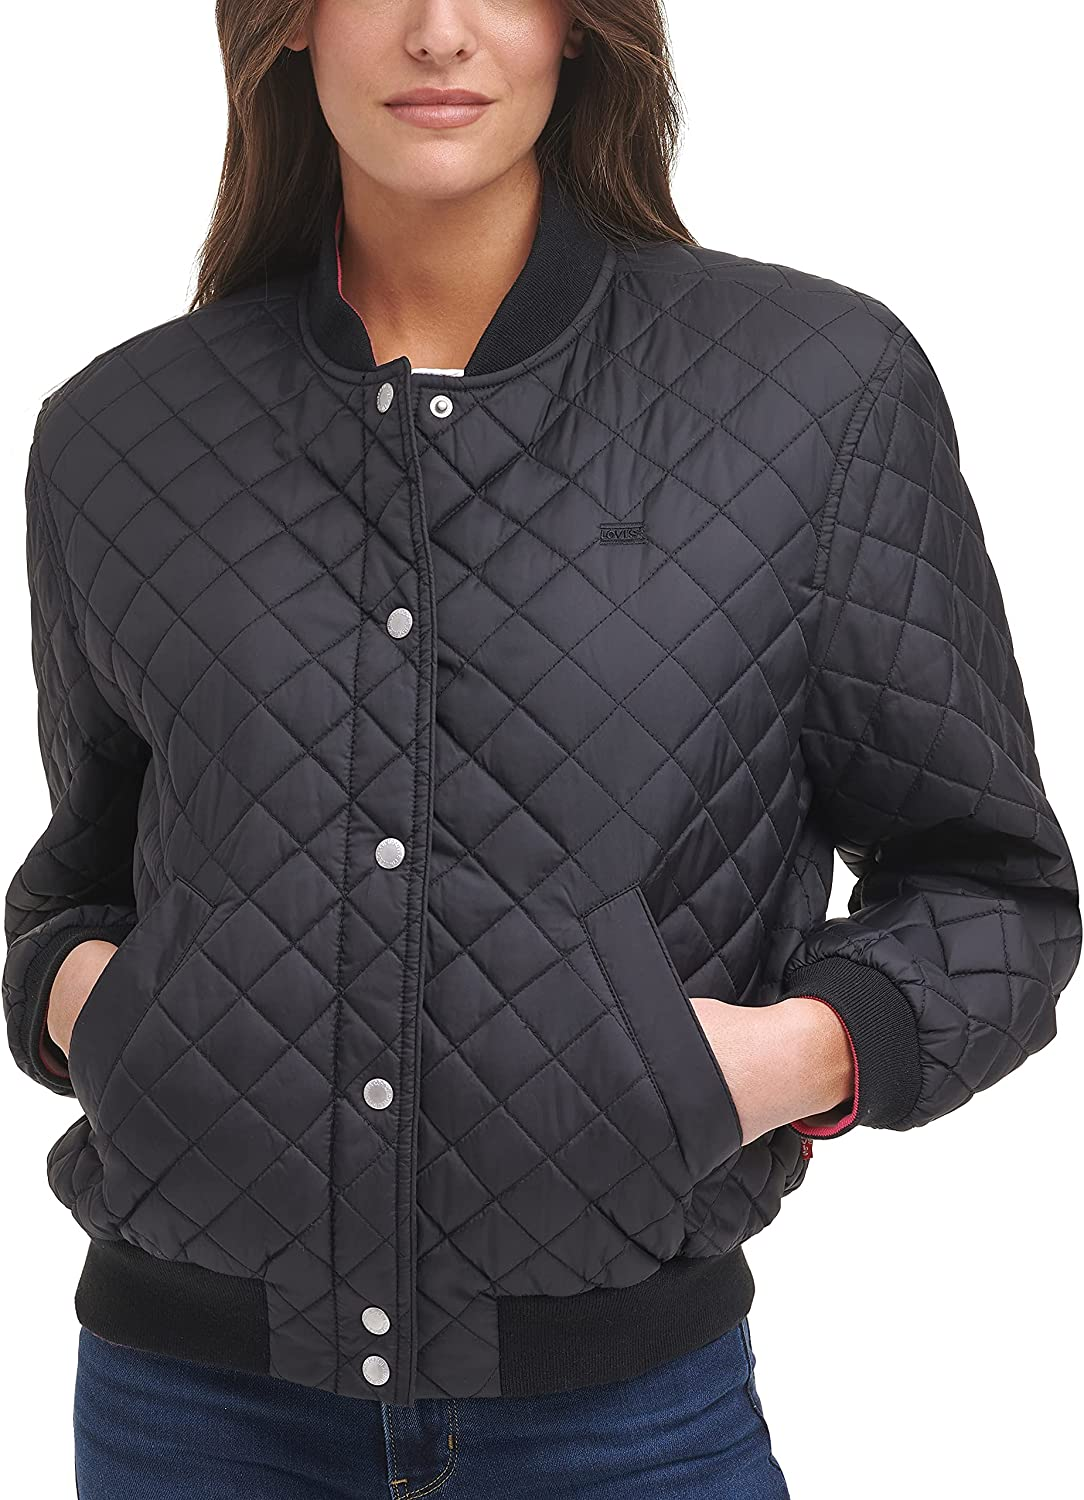 Levi's Women's Diamond Quilted Jacket Bomber Long-awaited Max 49% OFF